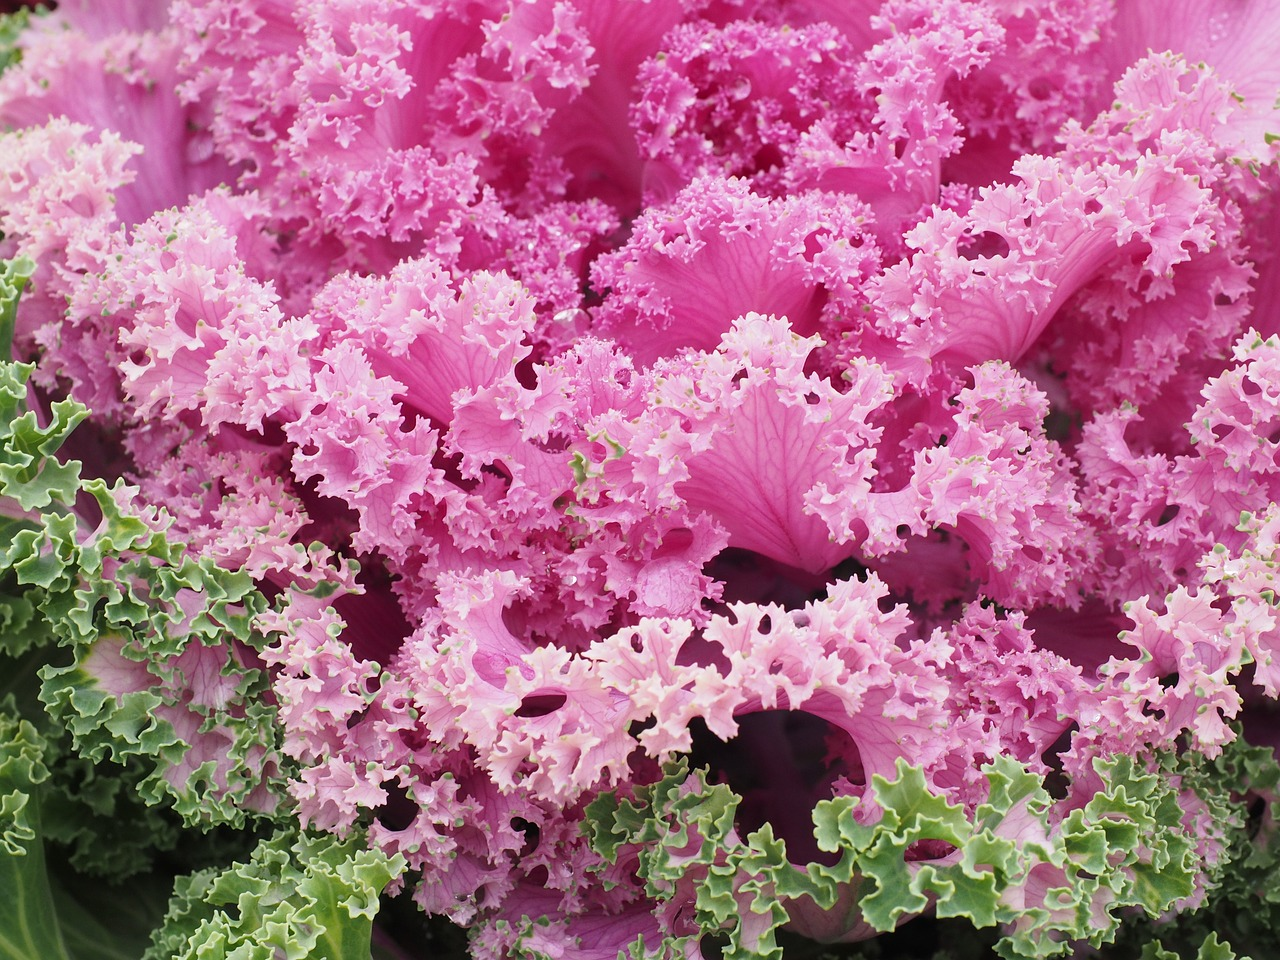 ornamental cabbage,leaves,detail,ruffled,kraus,fraktalähnlich,fractal,ornamental vegetables,ornamental plant,pink,brassica oleracea var,acephala,cabbage green,brassica oleracea,kohl,cabbage,vegetables,brassica,rosette,cabbage leaf,leaf,close,botany,plant,purple,violet,winter jewelry,krausblättrig,ornamental cabbage locations,ornamental cabbage chidori red,chidori red,free pictures, free photos, free images, royalty free, free illustrations